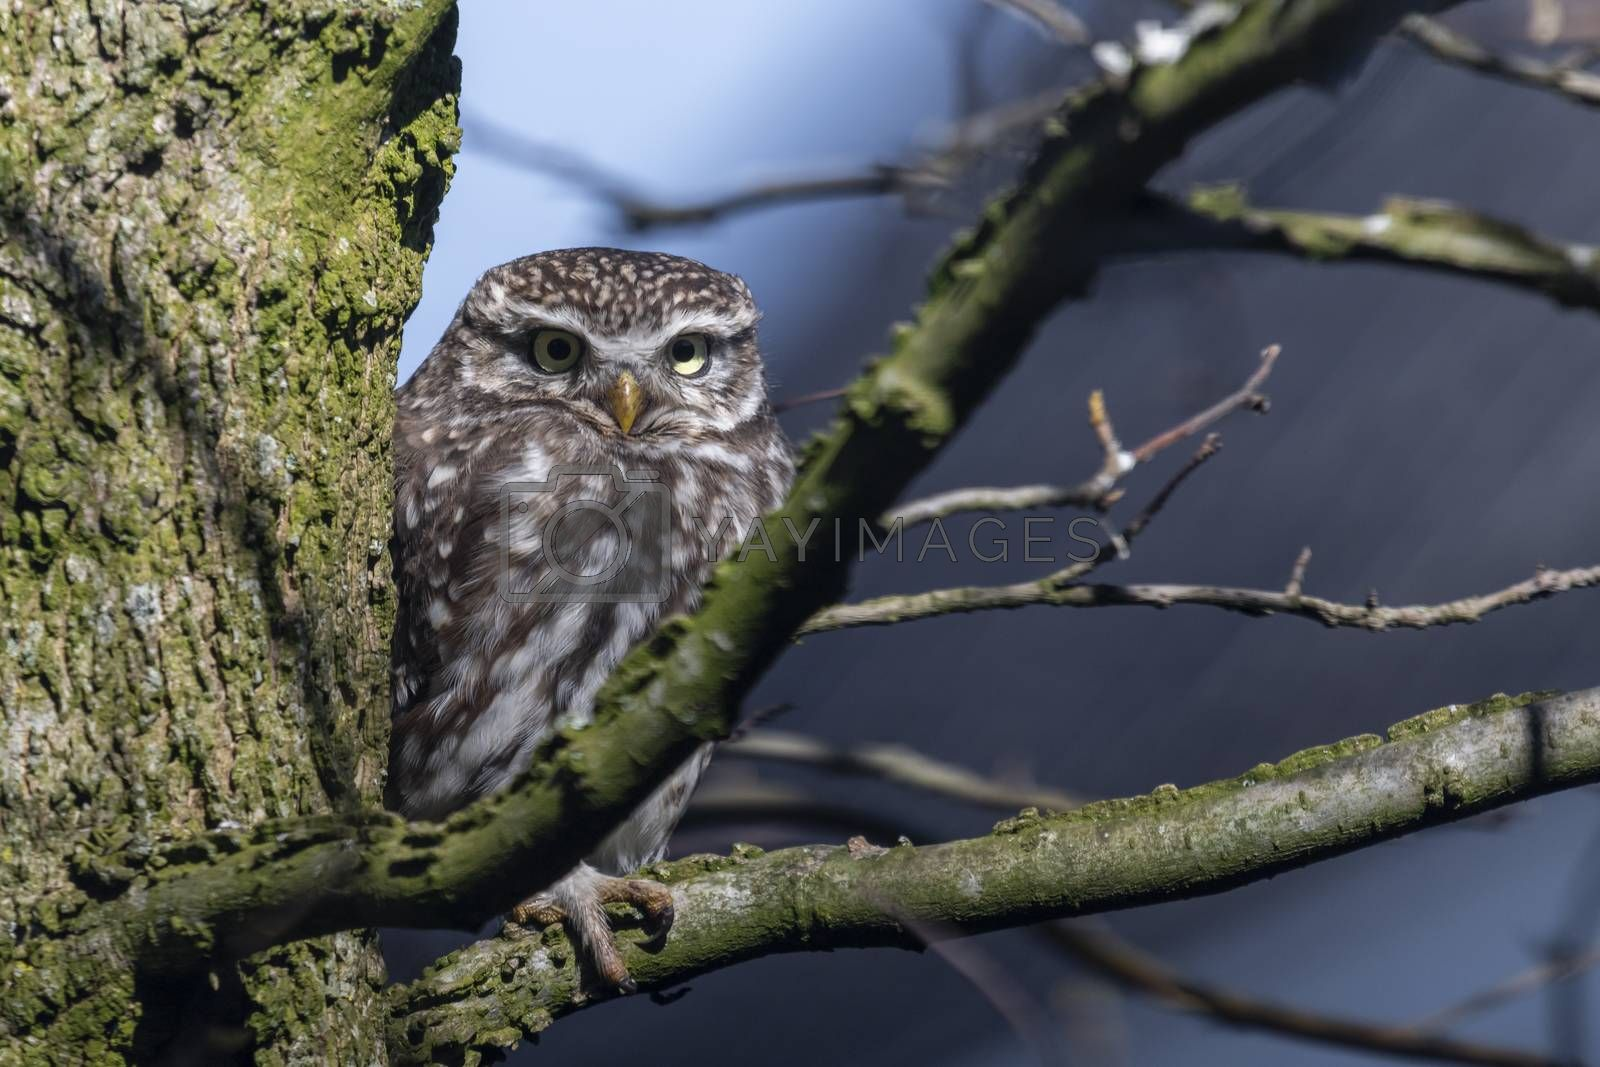 Little owl in a garden tree in the early spring in the Netherlands